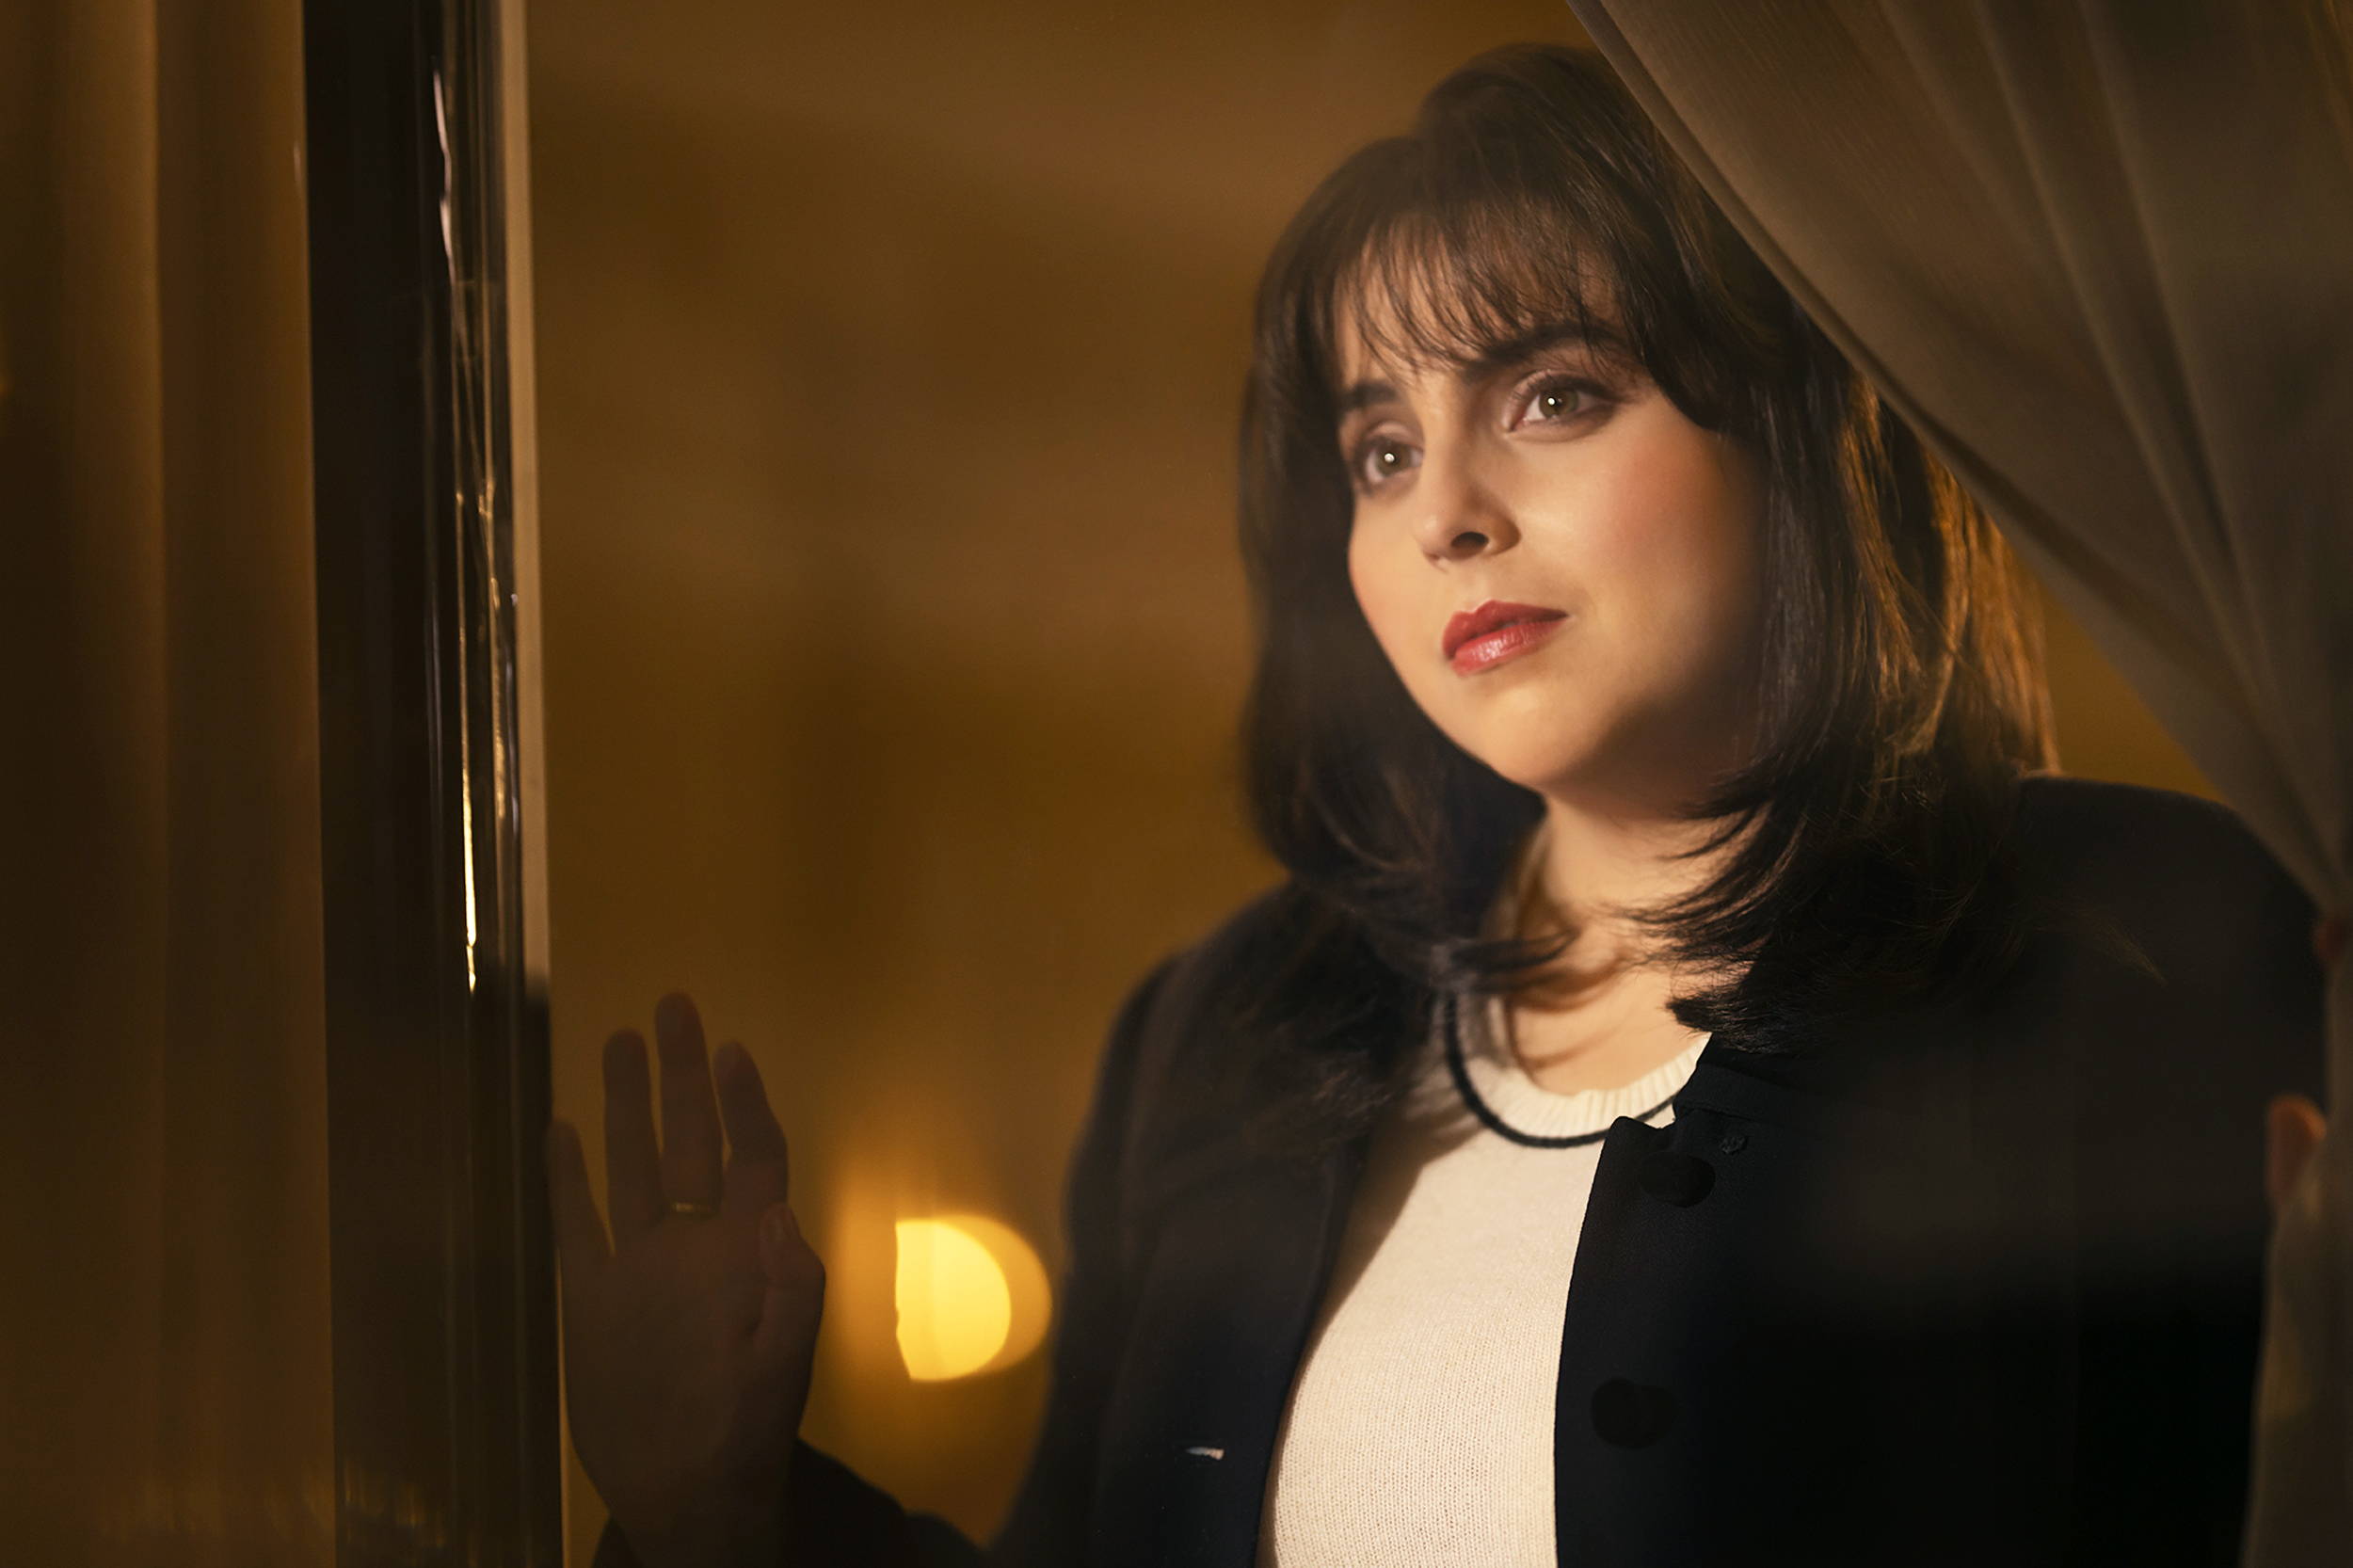 Monica Lewinsky gets a chance to retell her story. And it really hits a nerve.